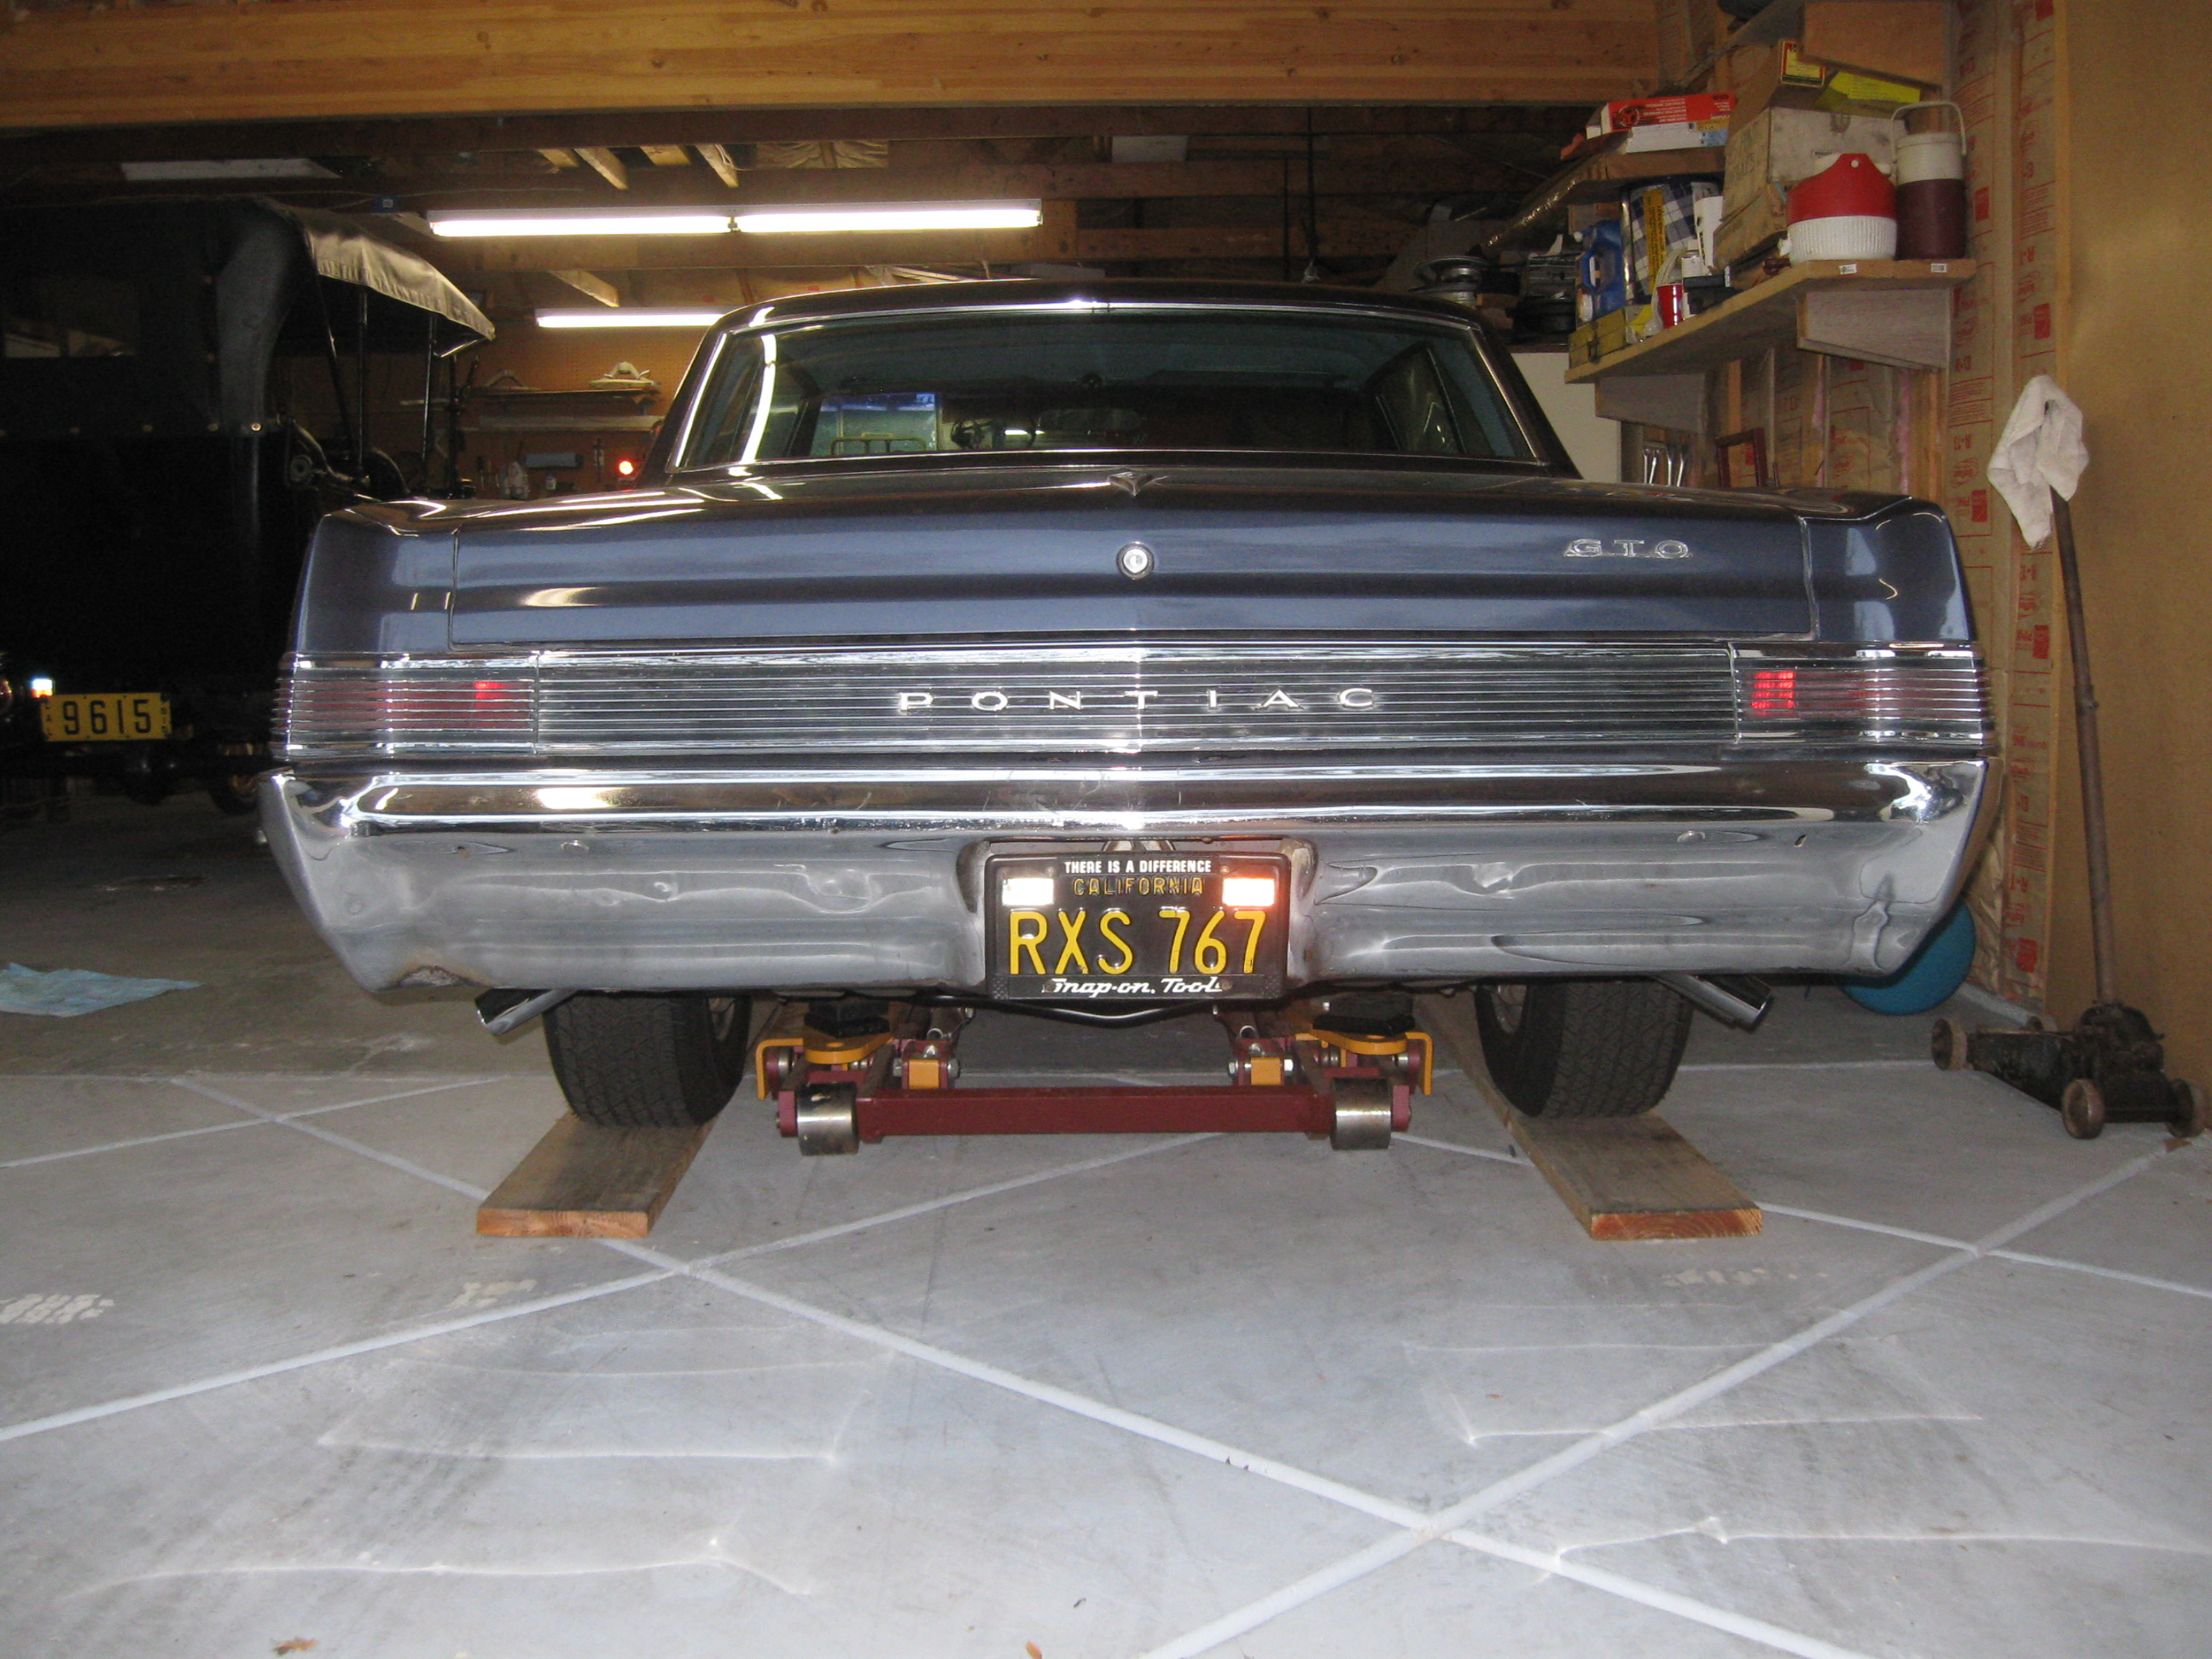 The '65 Gets its Back Up Lights Back-gtos-013.jpg